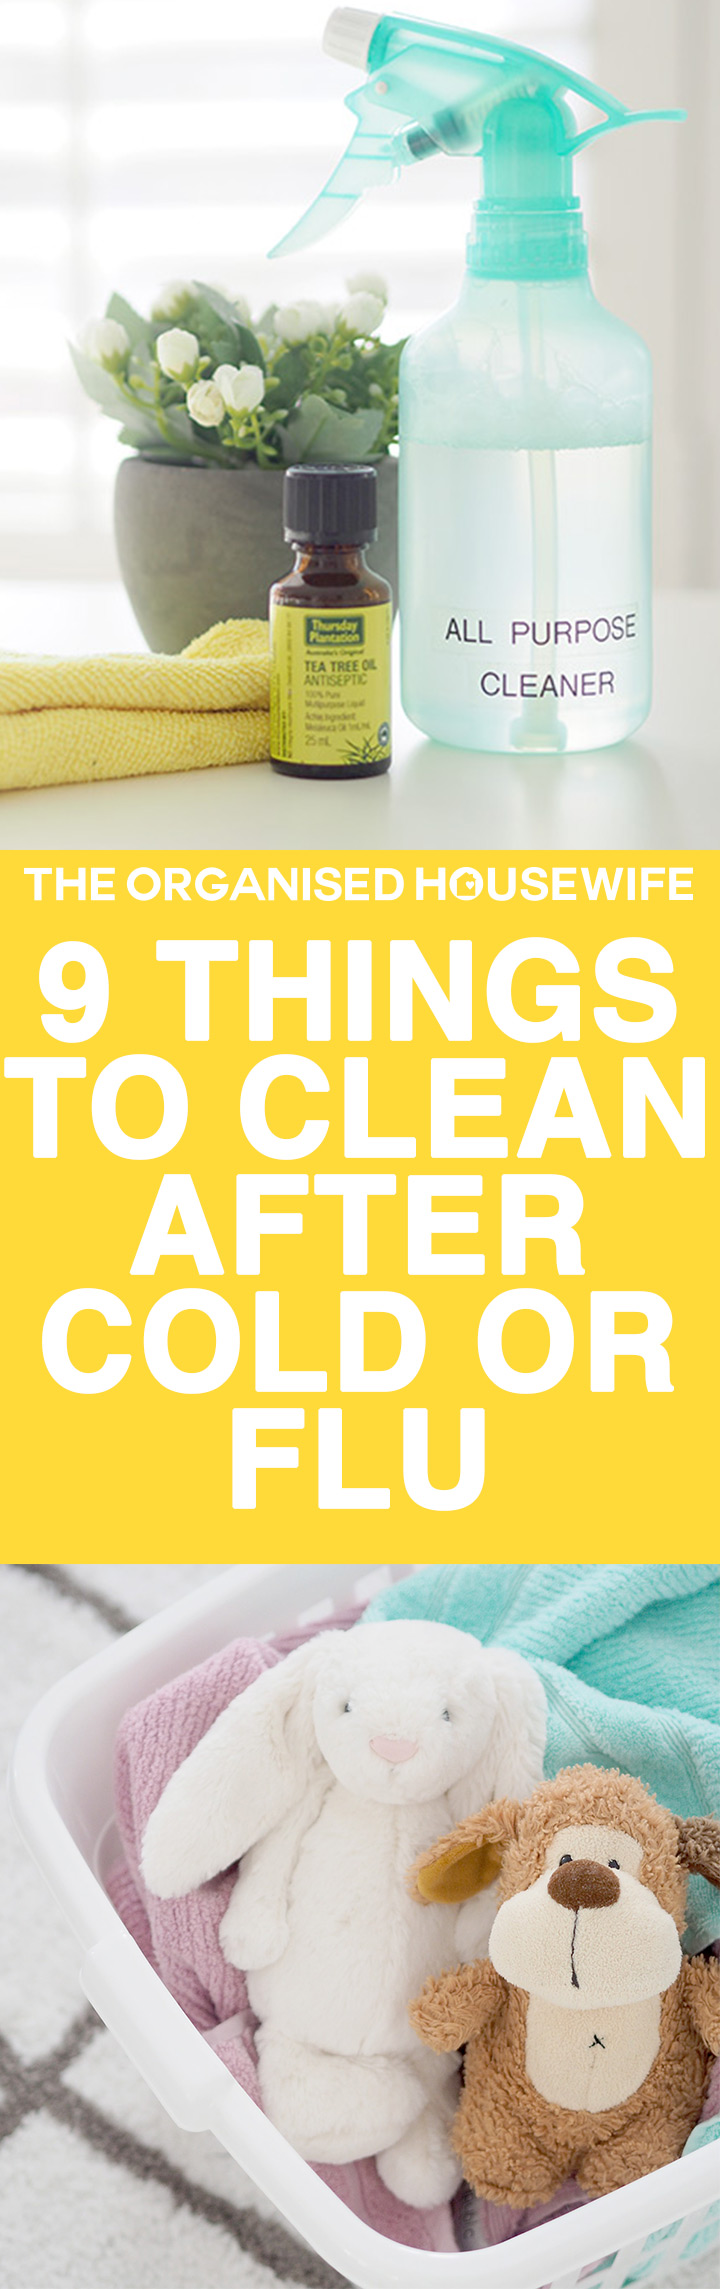 Has the winter cold and flu bug hit your house? When we have someone sick in the house, I try to avoid exposing it to other family members, there are things to clean and disinfect during and after to help prevent the spread of germs and bacteria. Try my very simple, inexpensive and effective homemade options.